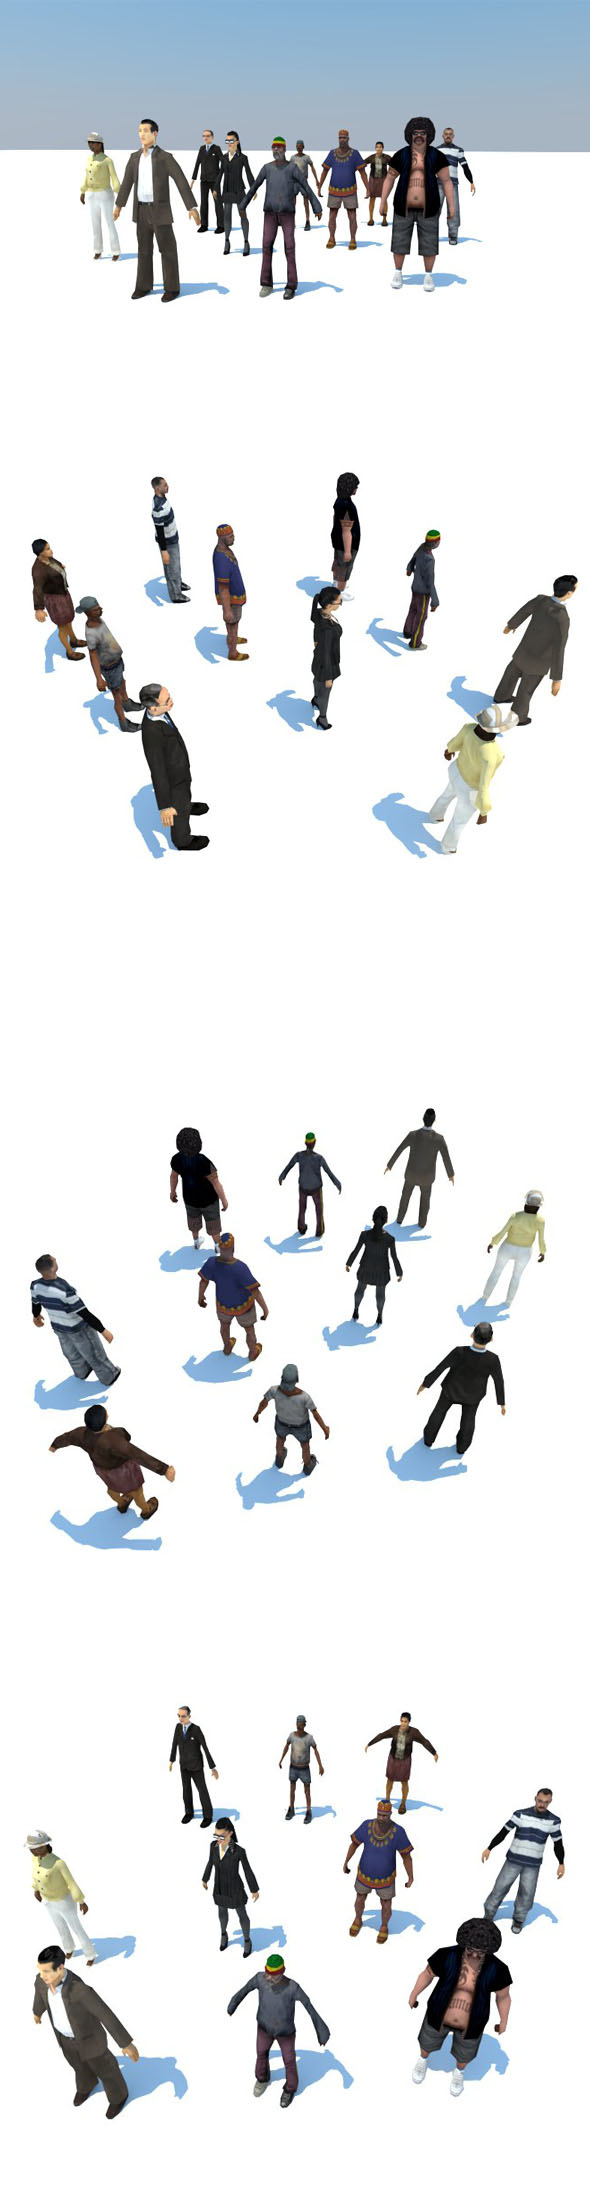 10 LOW POLY PEOPLE P1 - 3DOcean Item for Sale